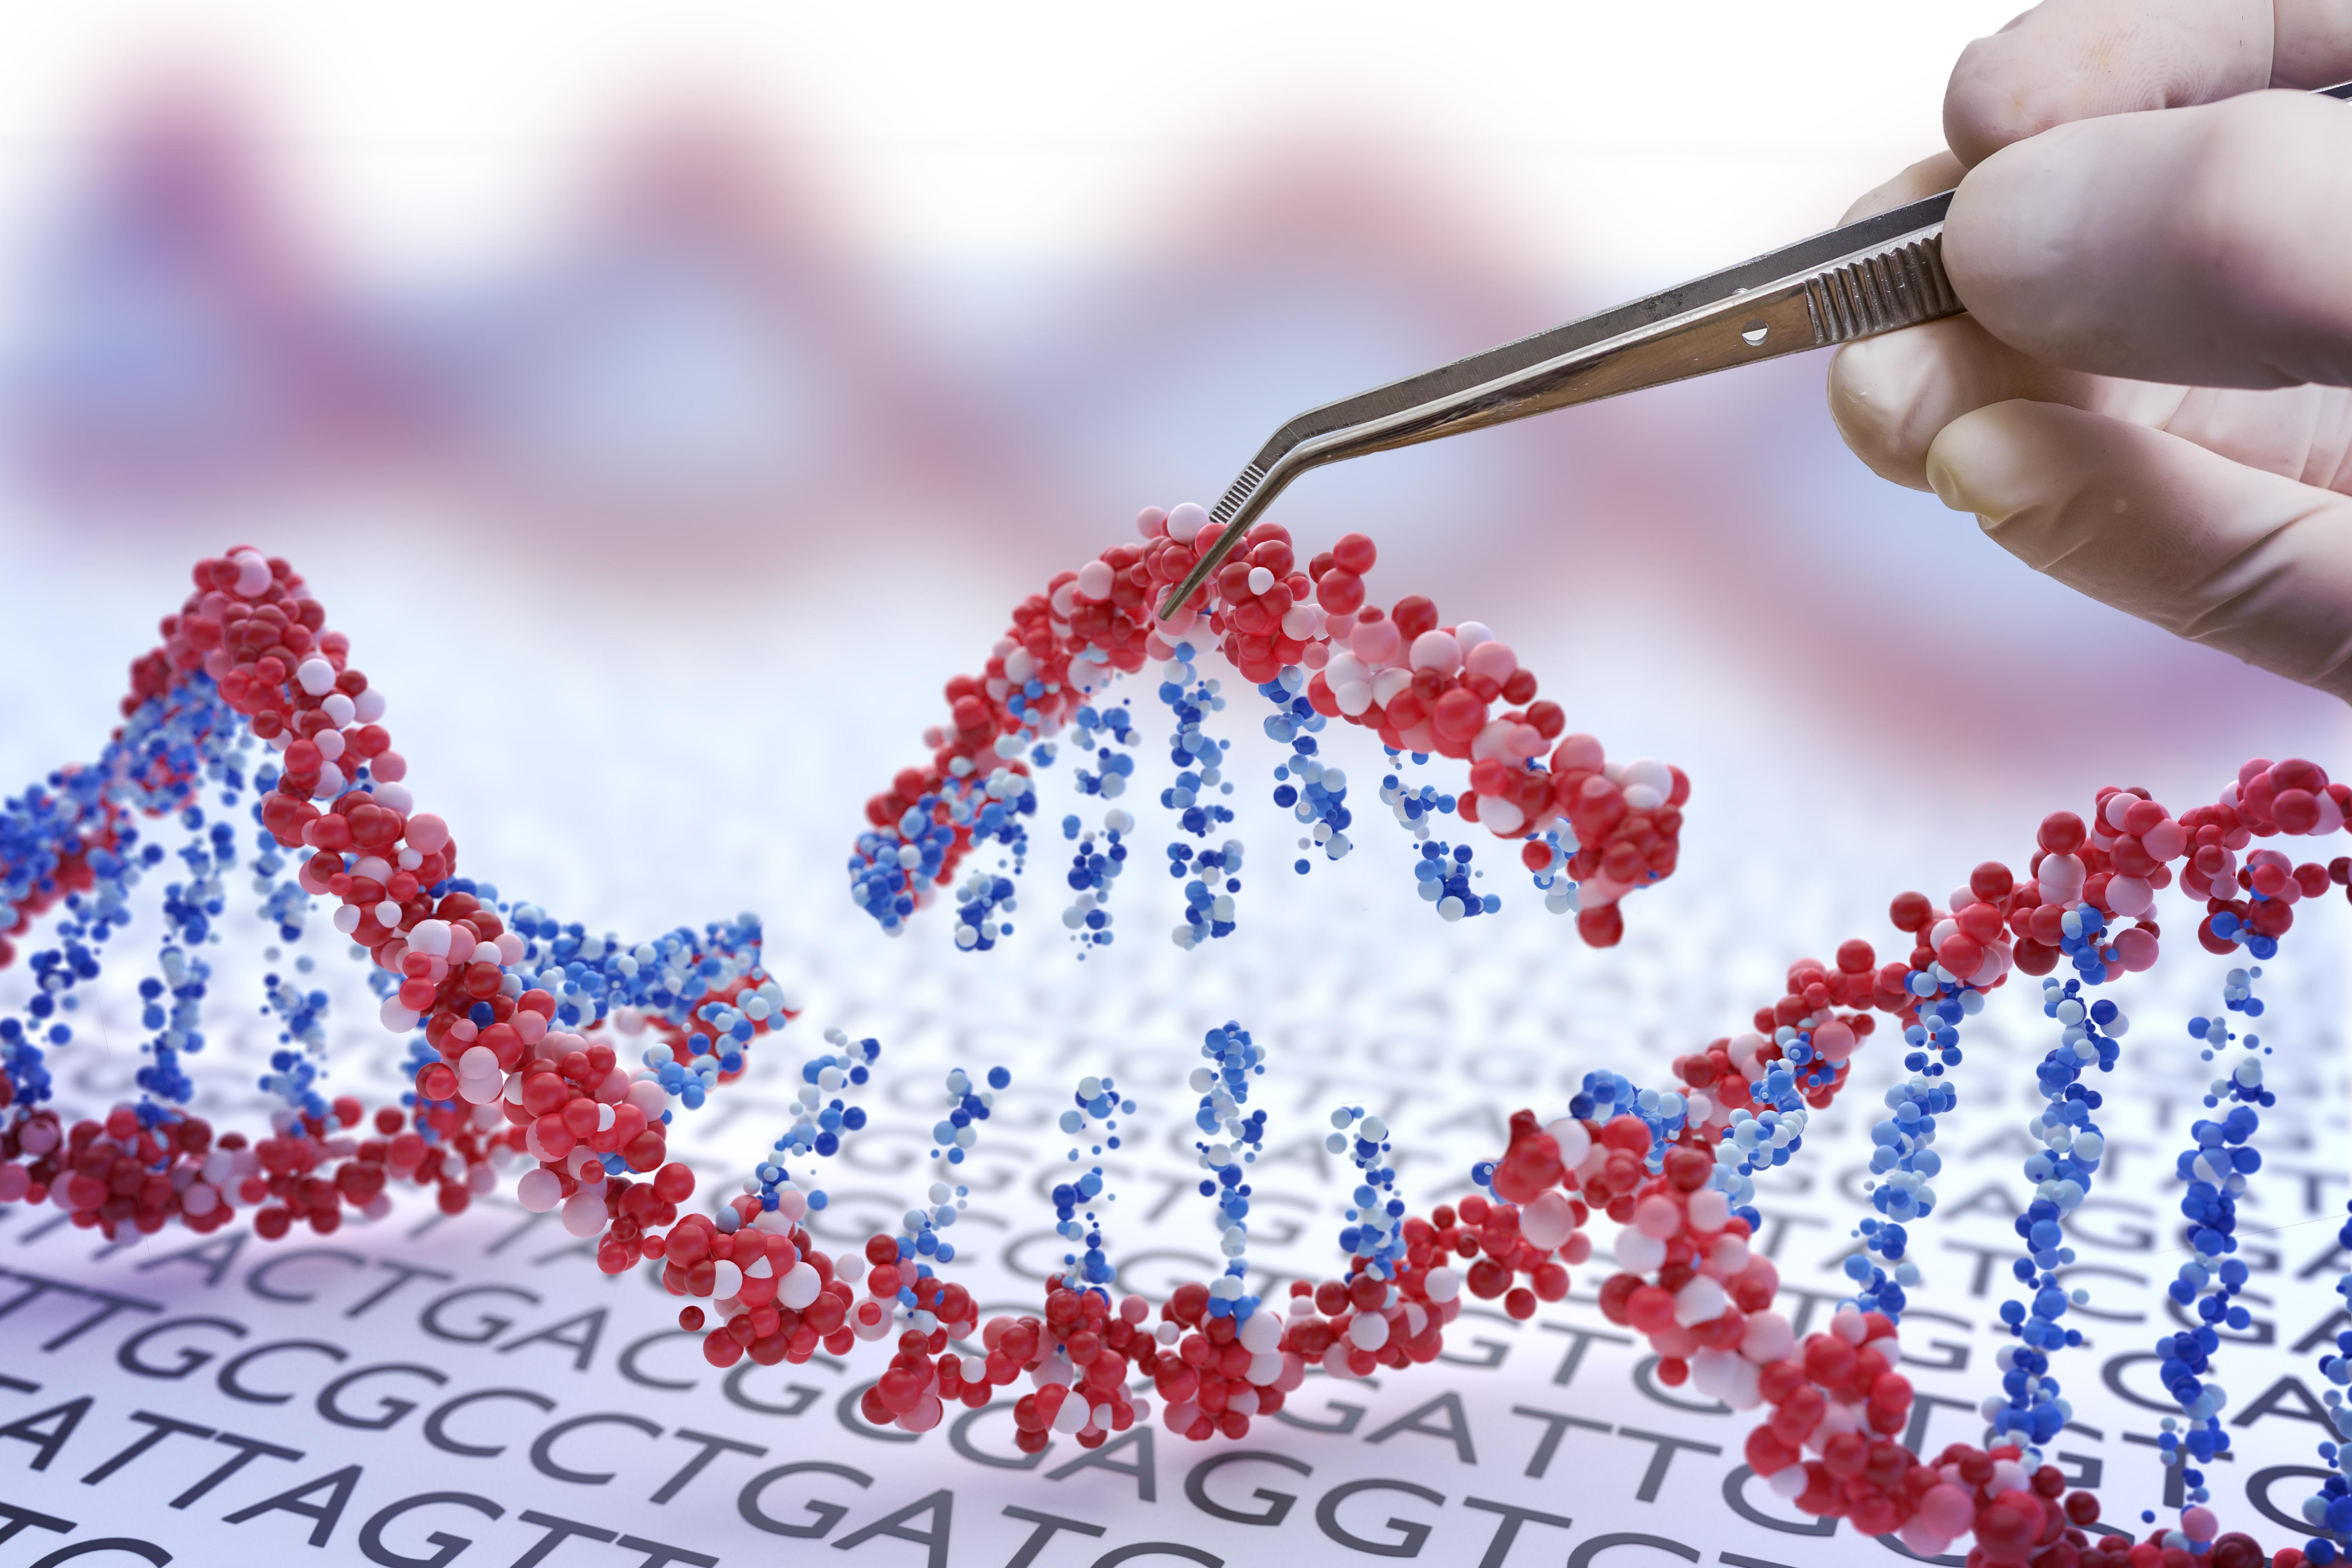 Artist's impression of gene therapy